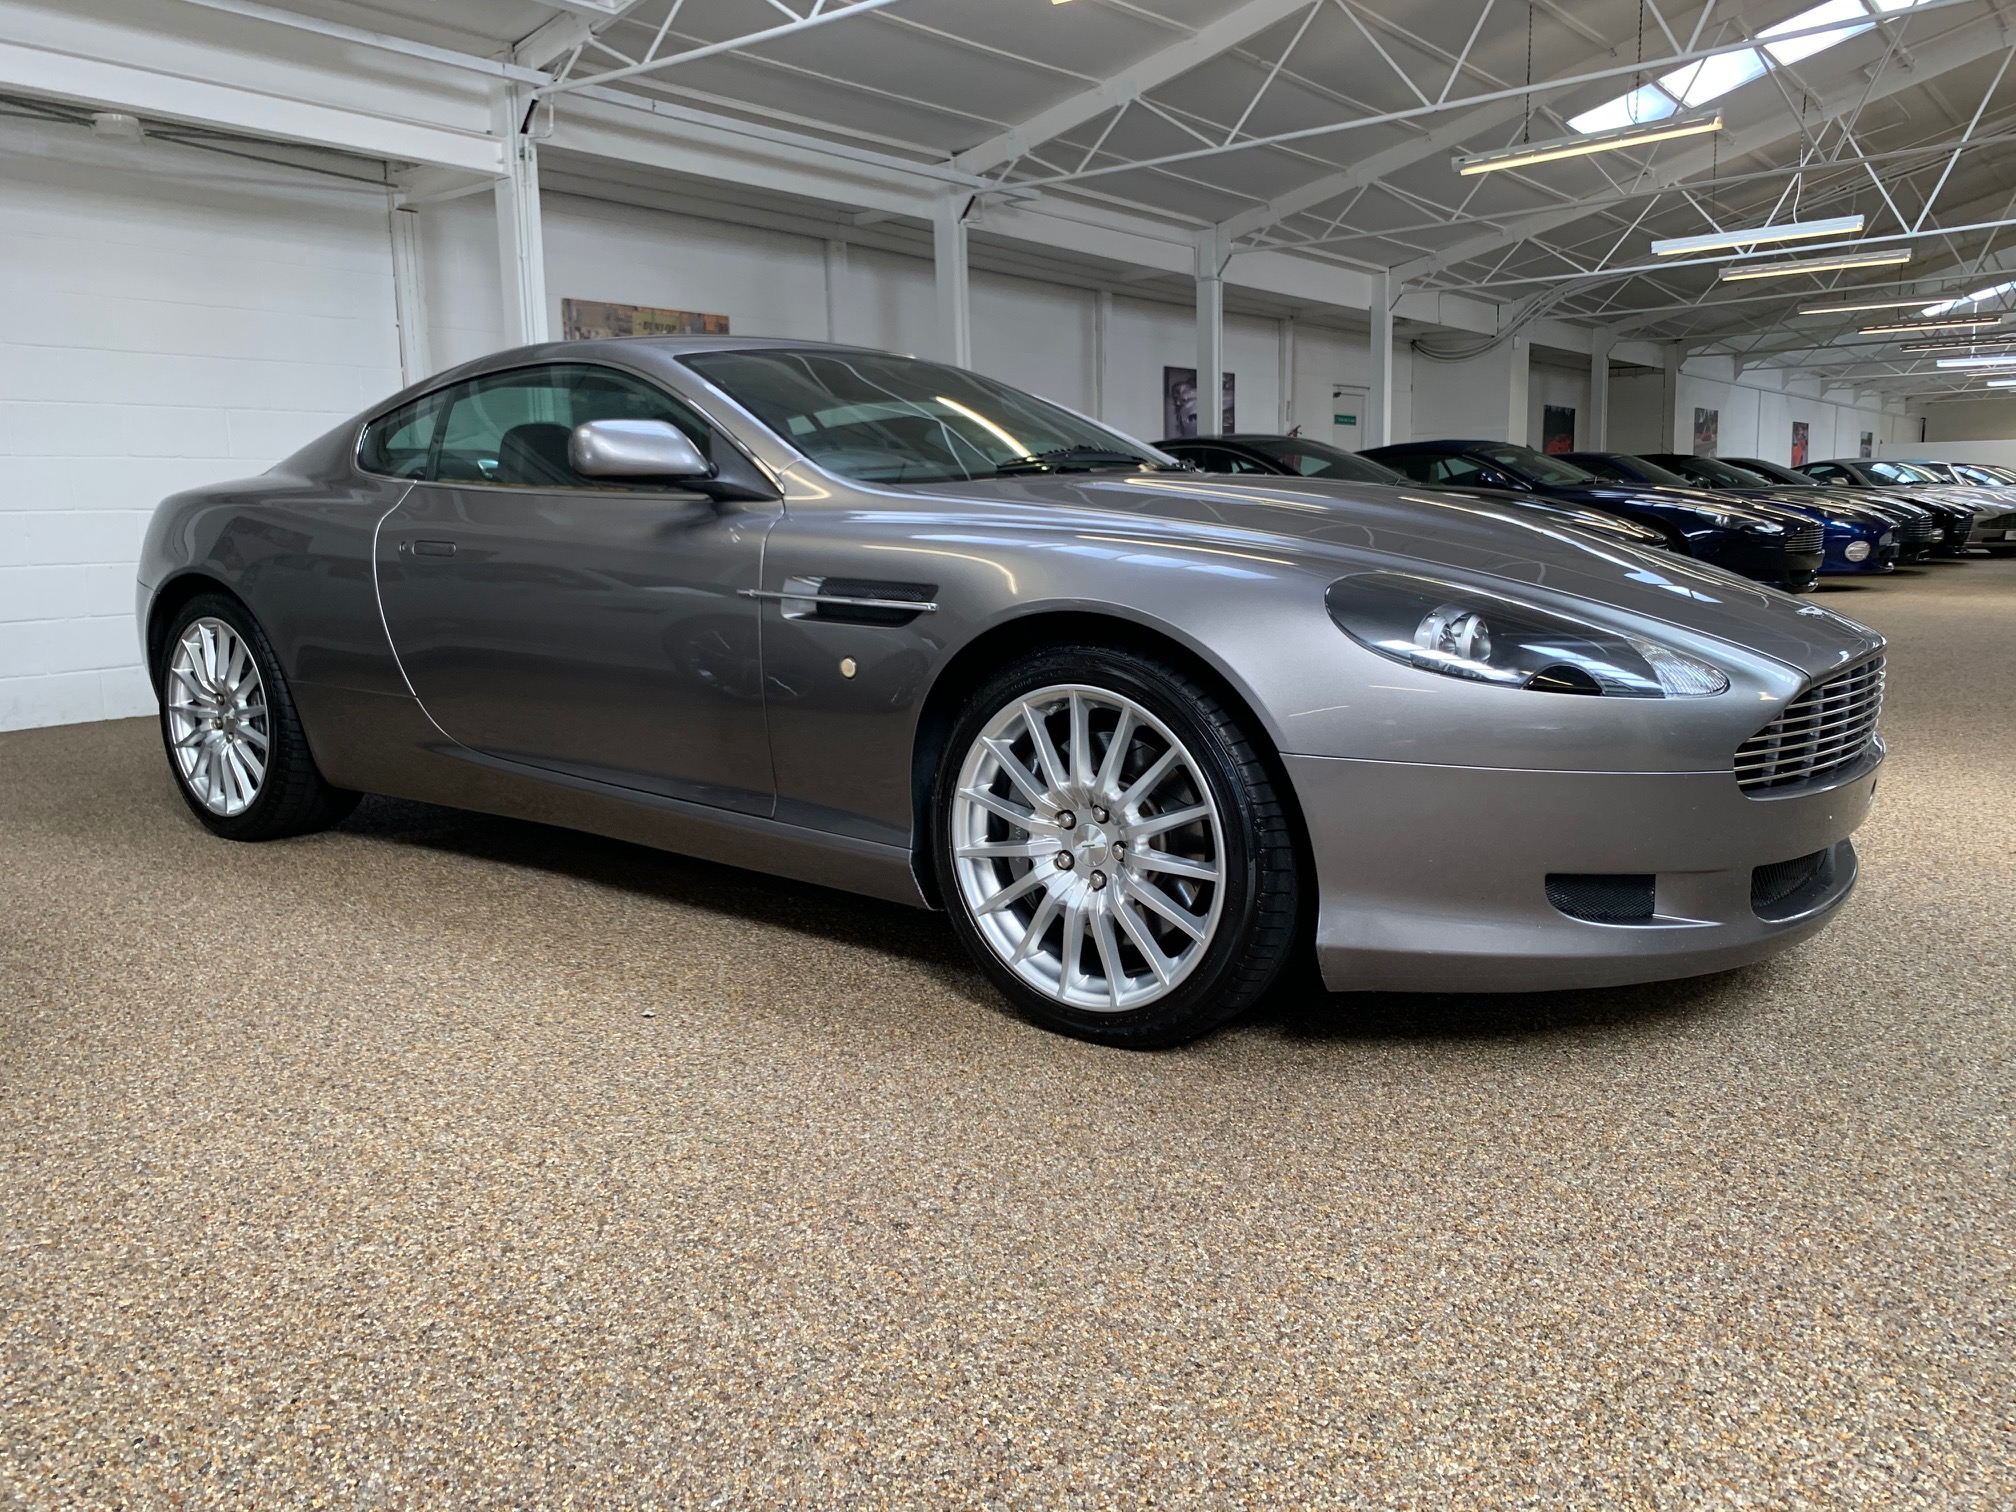 Aston Martin DB9 for sale